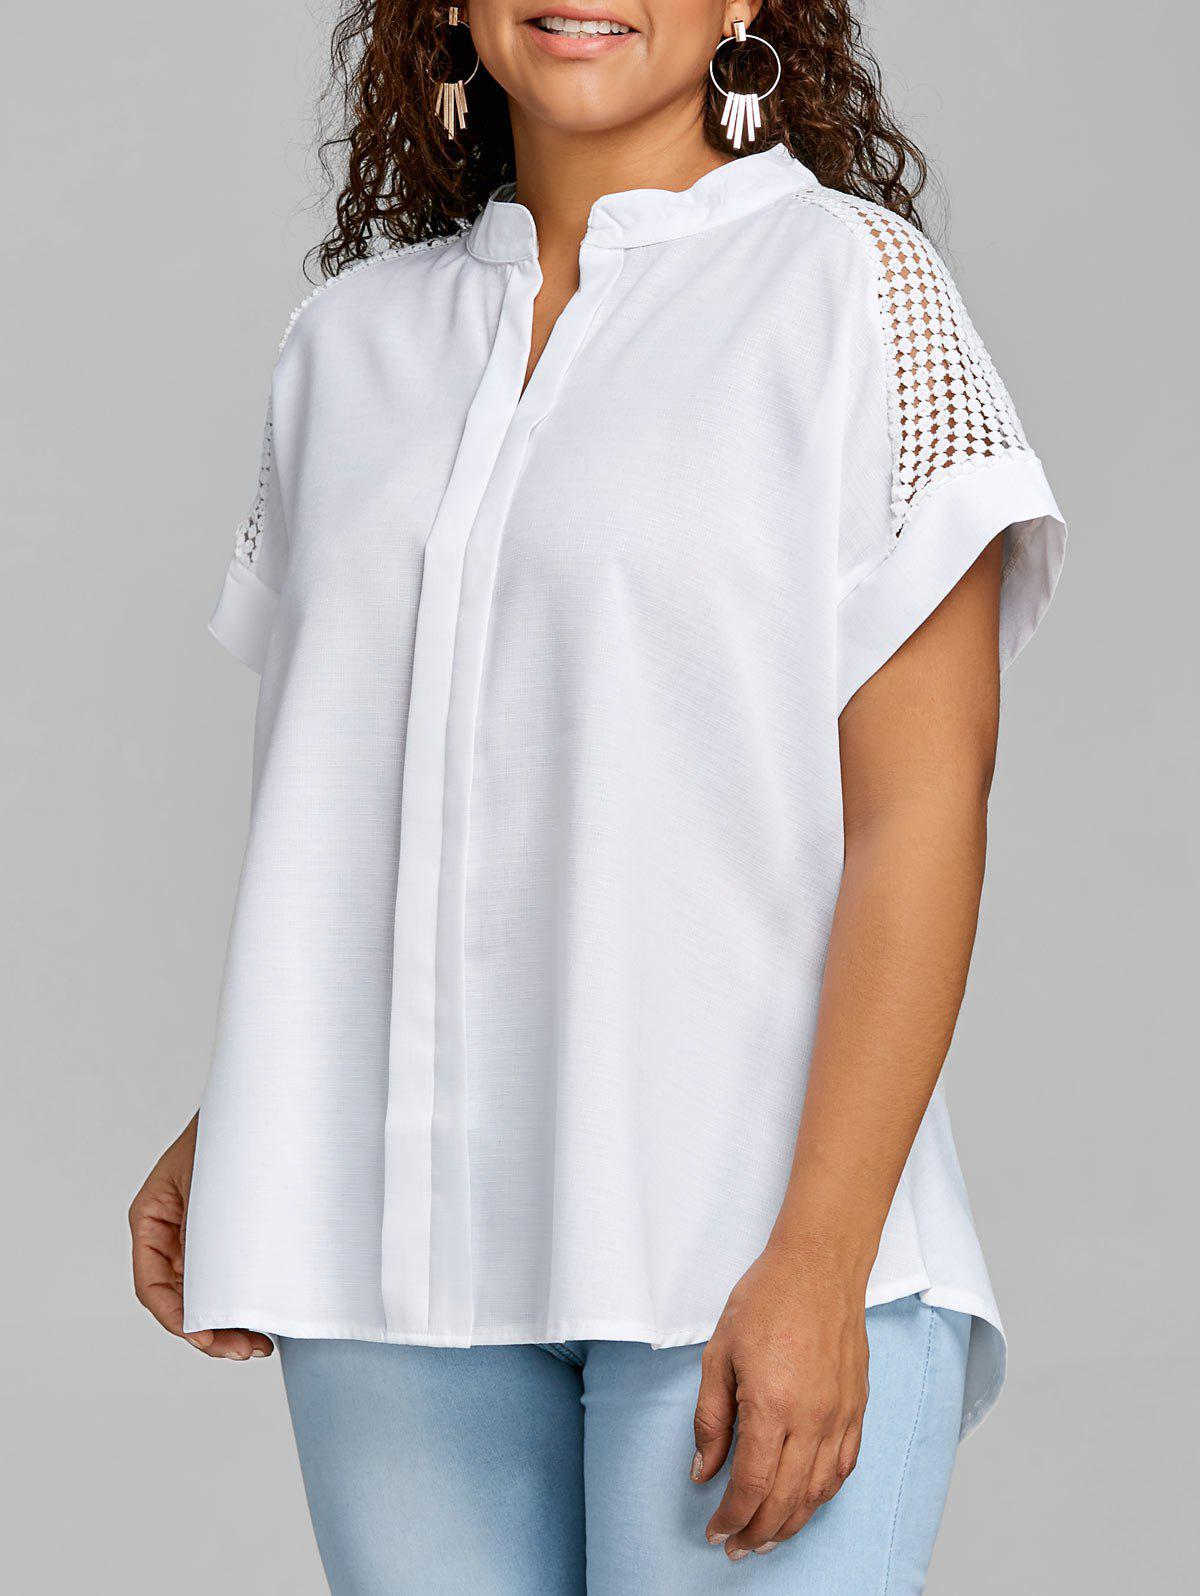 Crochet High Low Plus Size Blouse - WHITE 3XL